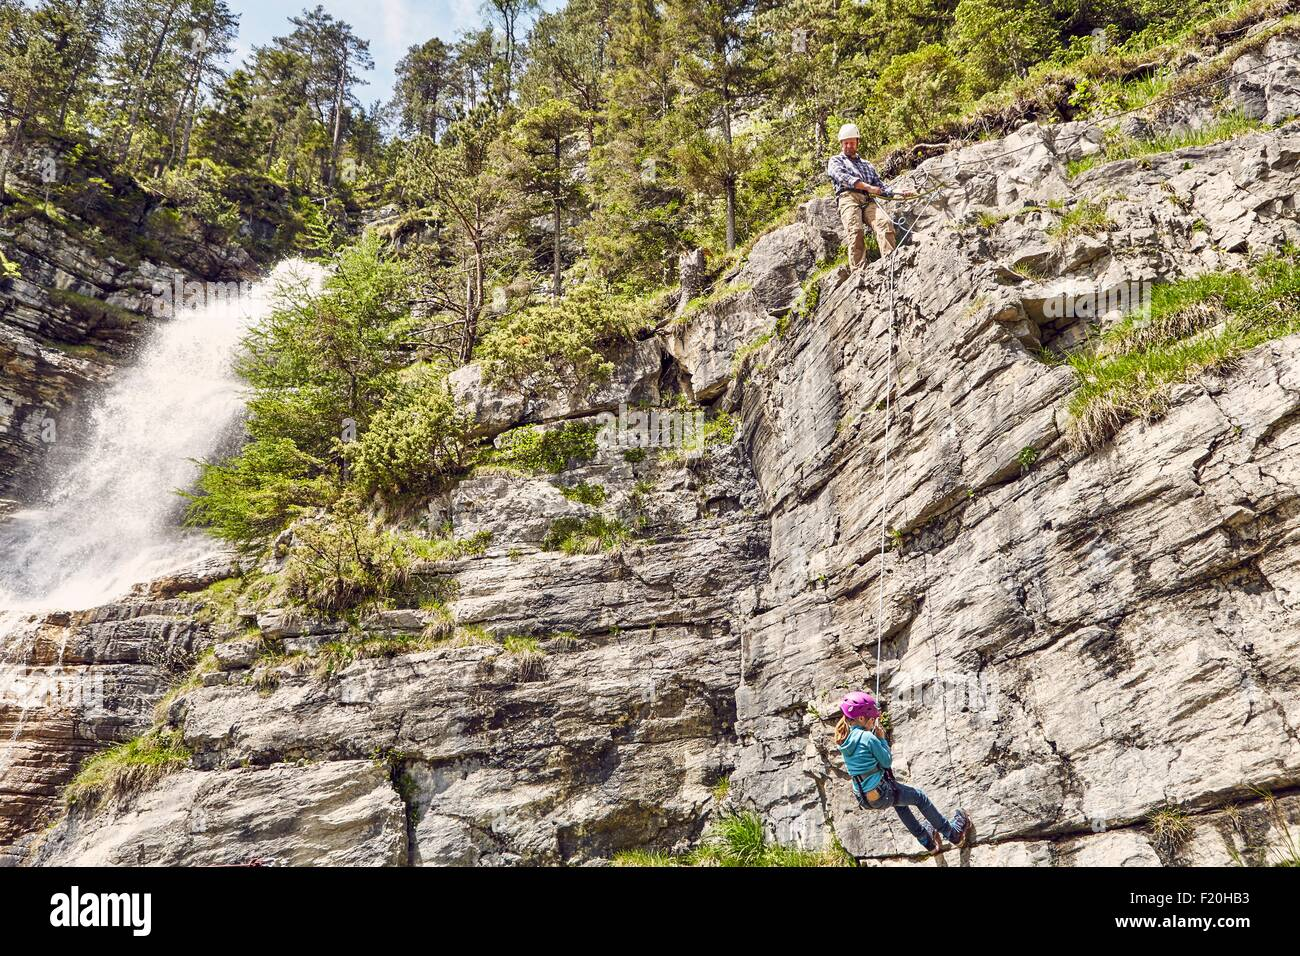 Father and child rock climbing, Ehrwald, Tyrol, Austria Stock Photo